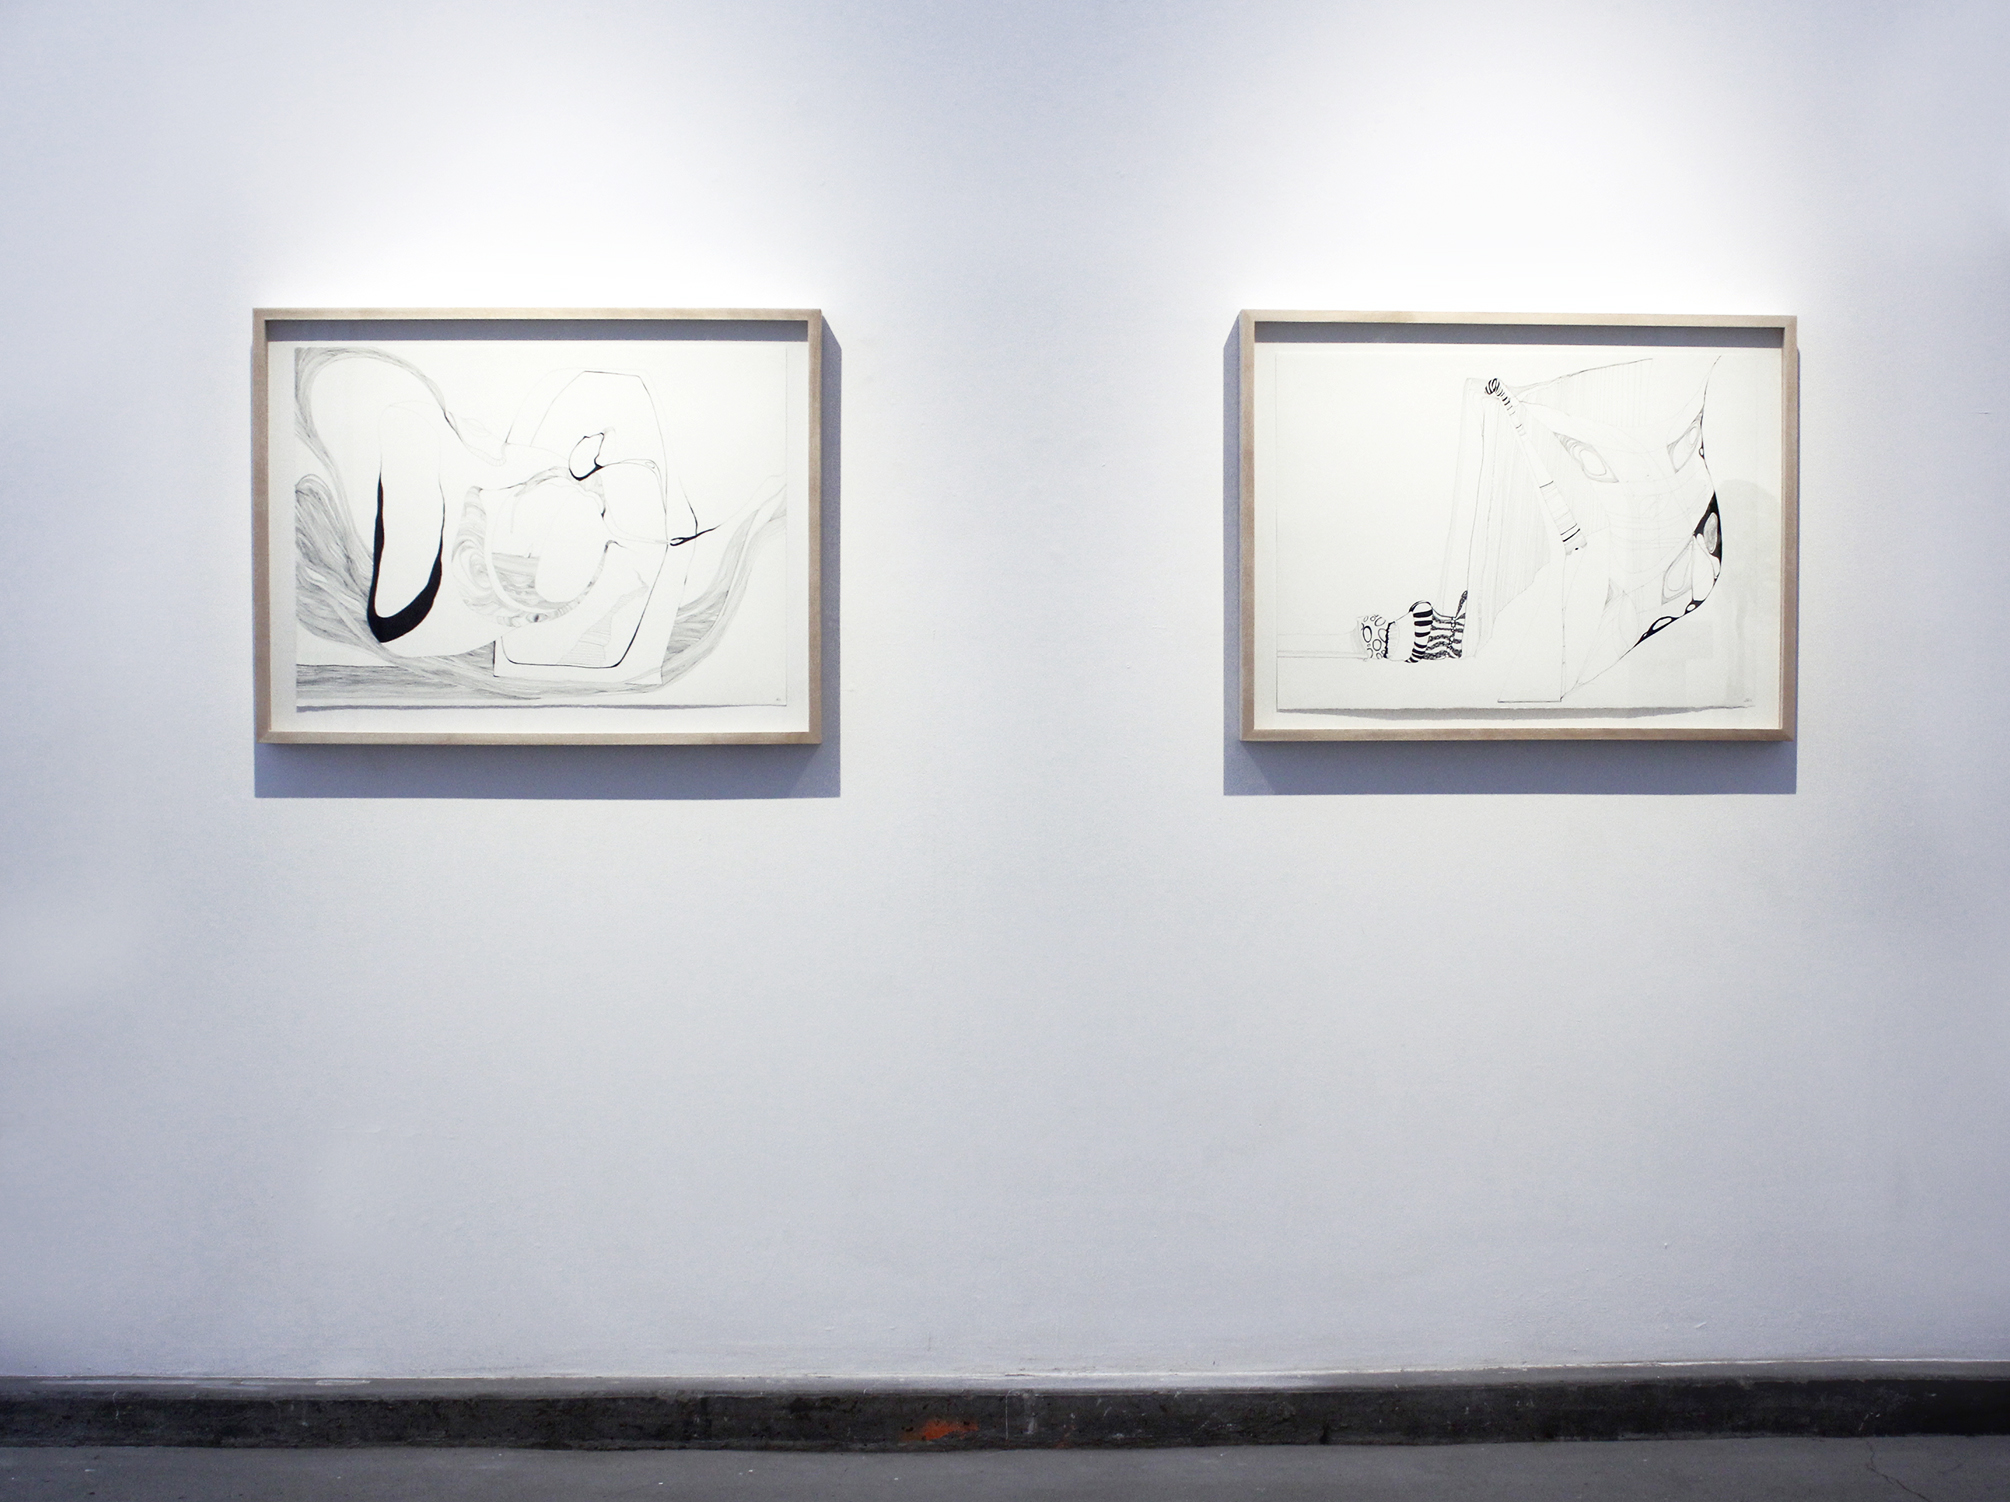 Drawings (Passage A, Passage B) in situ